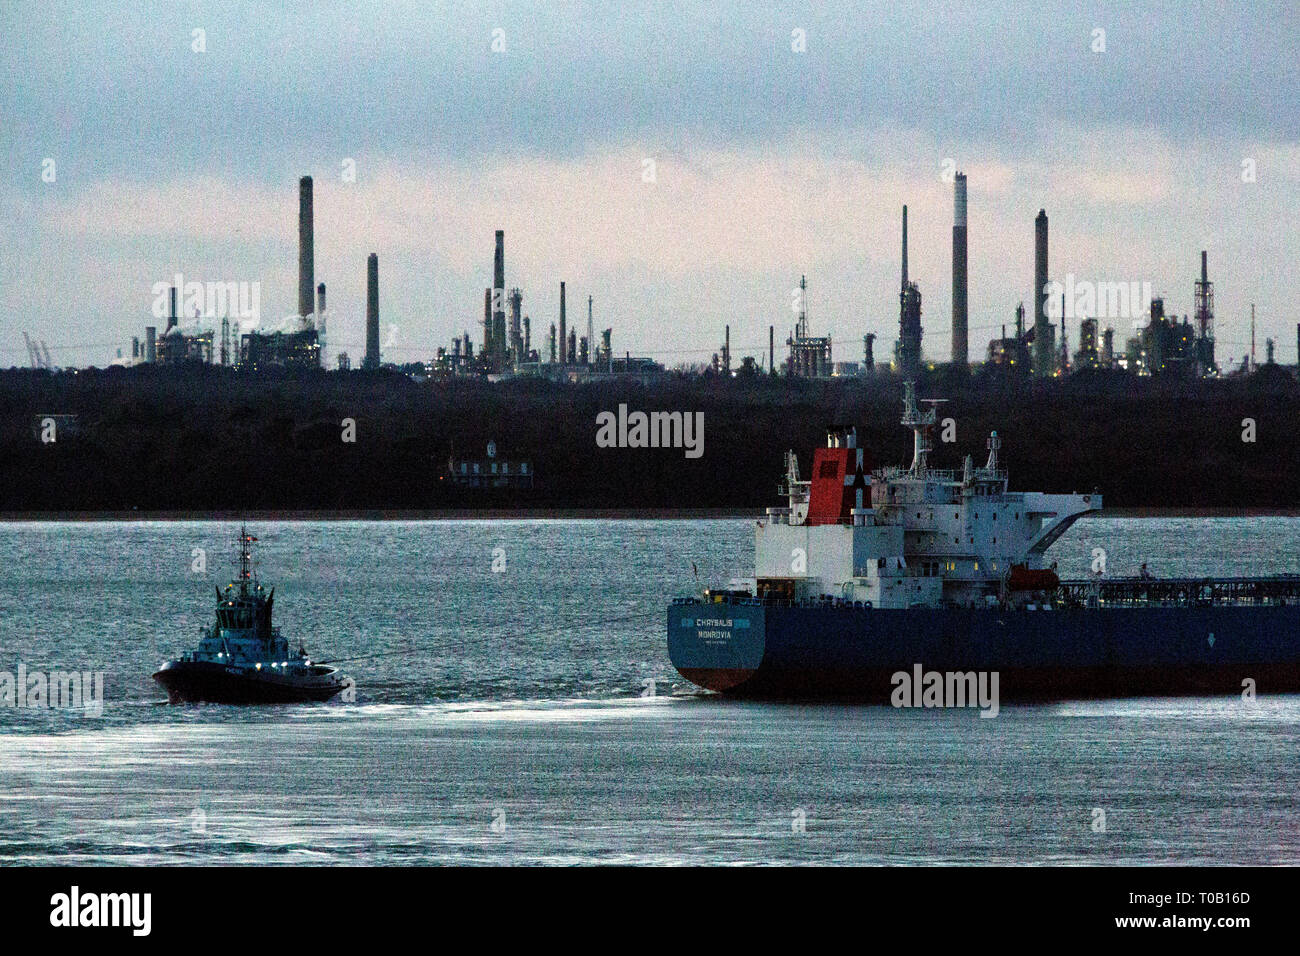 Chrysalis,Monrovia,Oil.Tanker, Fawley,Oil,Refinery,The Solent,heading,Southampton,Container Terminal,Cowes,Isle of Wight,Hampshire,England,UK, - Stock Image